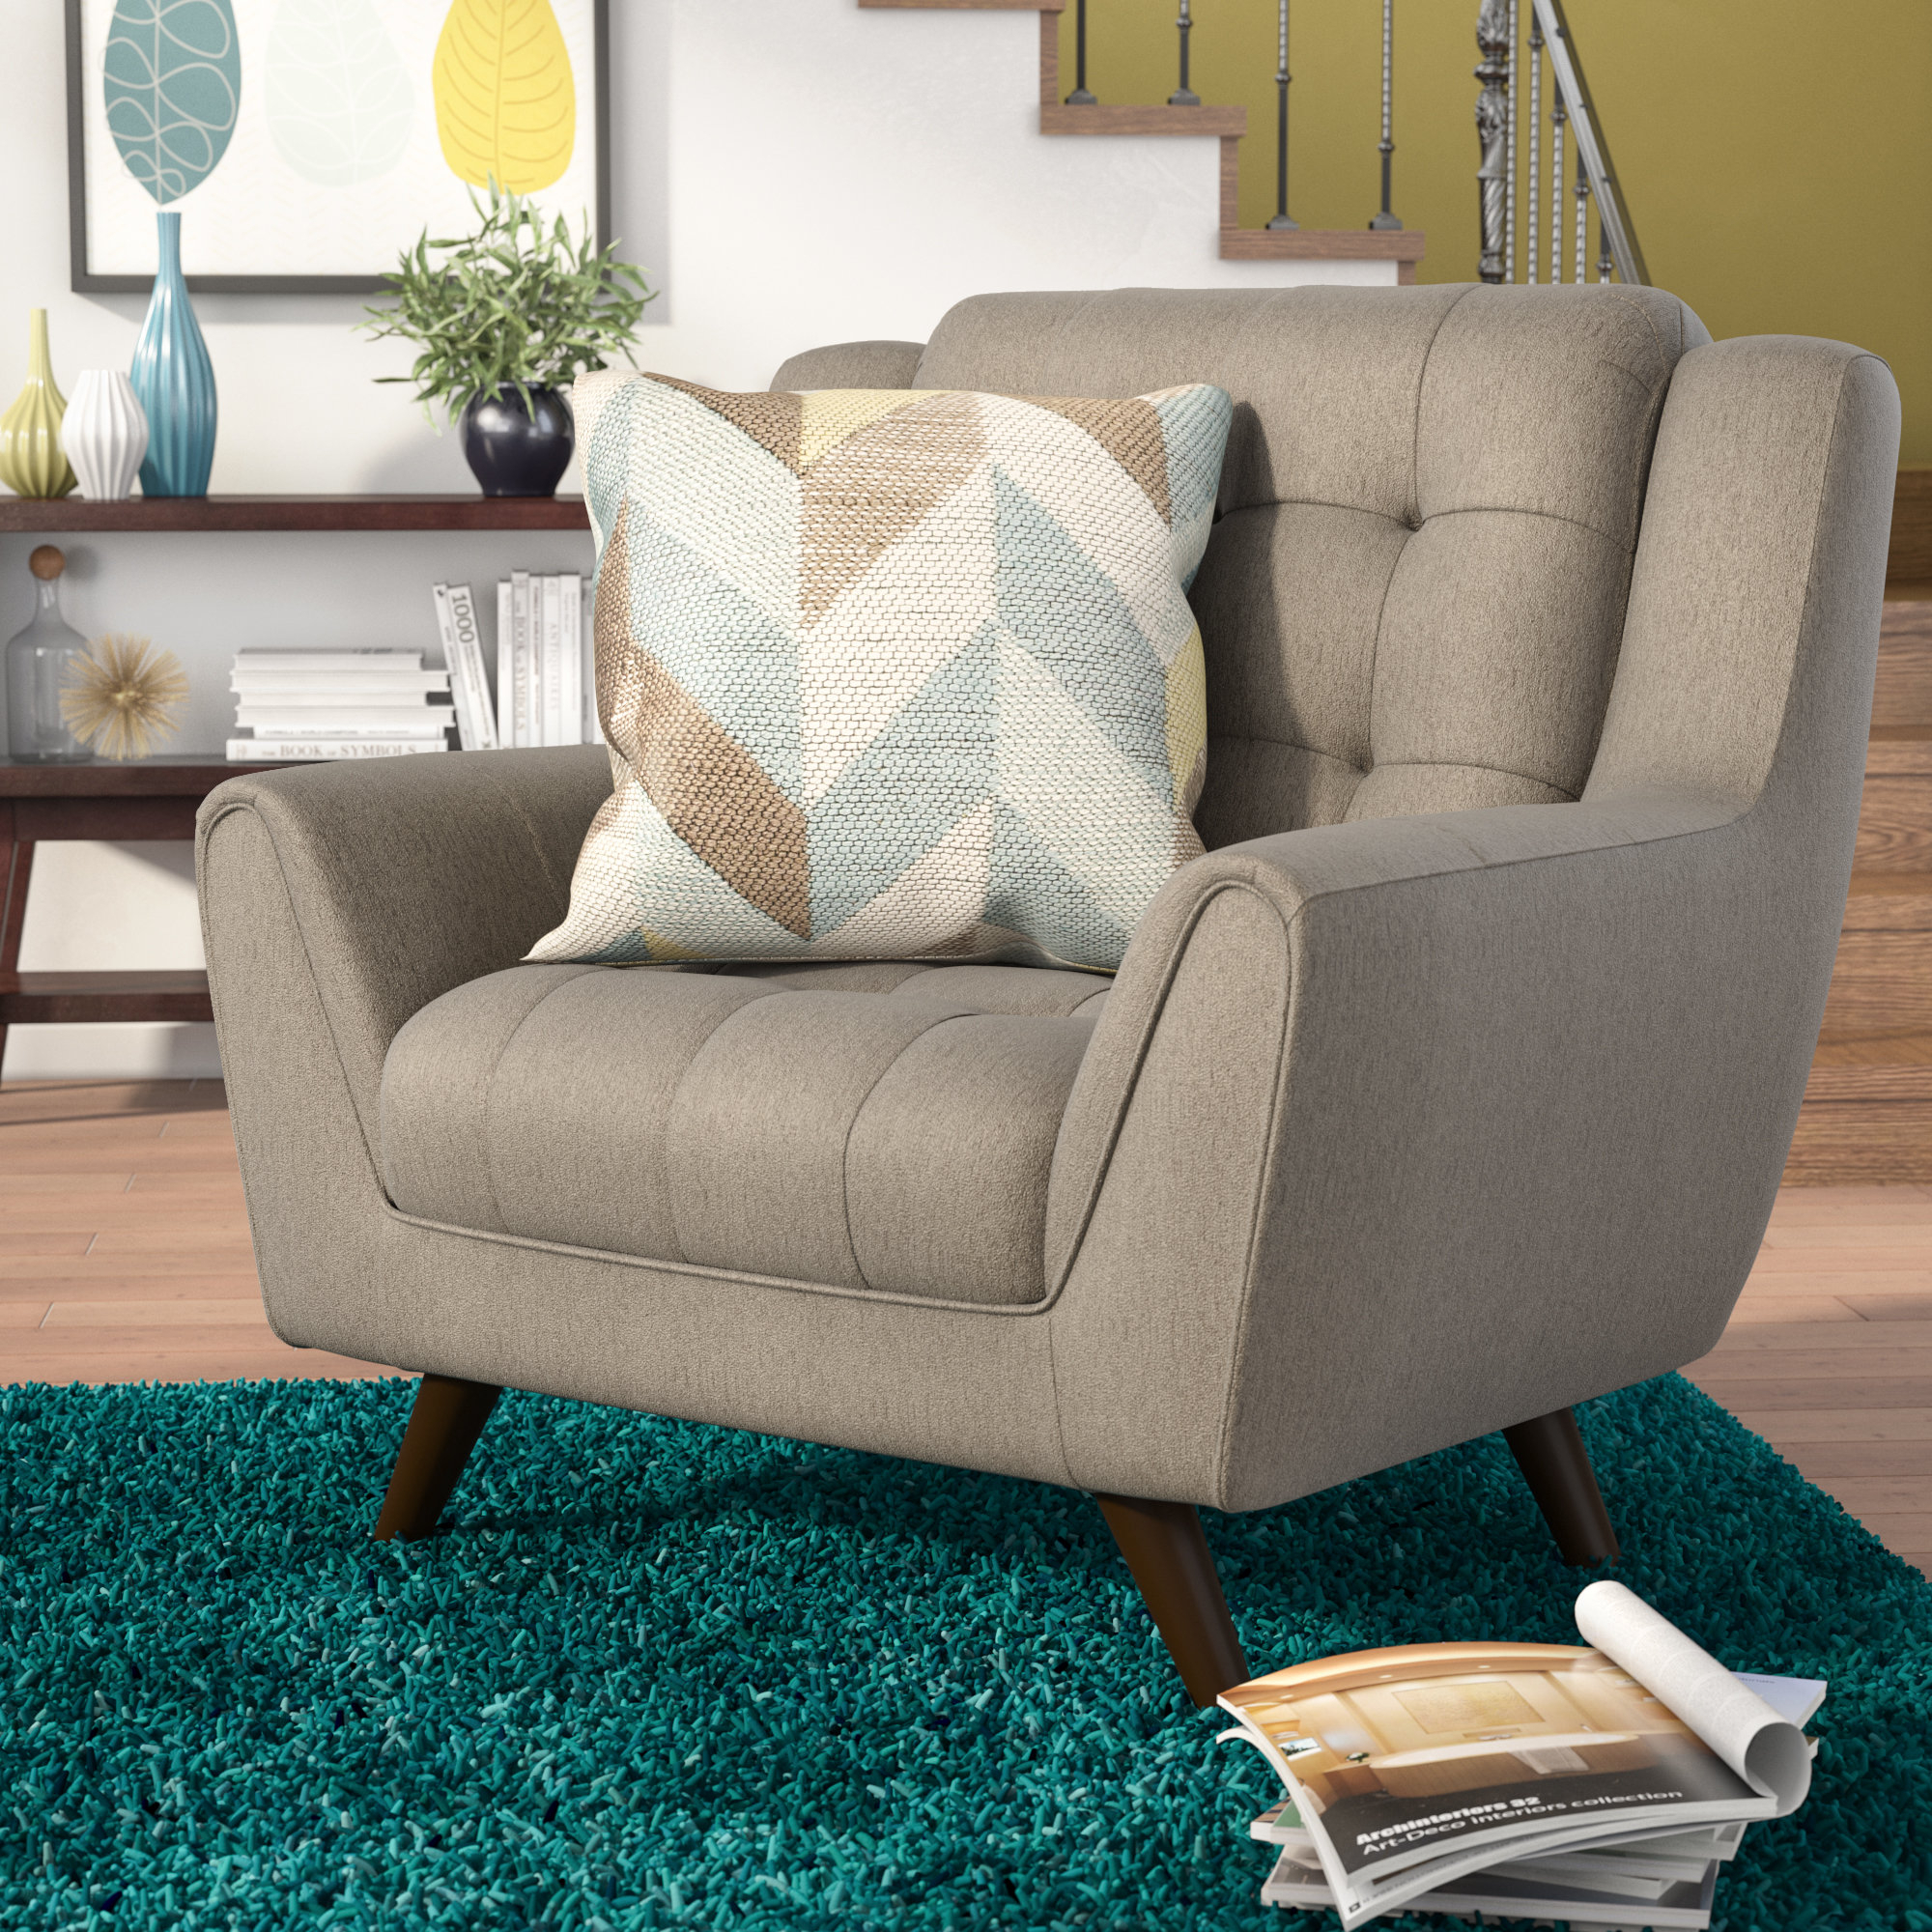 Langley Street Alvinholmes Chair And A Half & Reviews | Wayfair With Regard To Escondido Sofa Chairs (Photo 4 of 20)